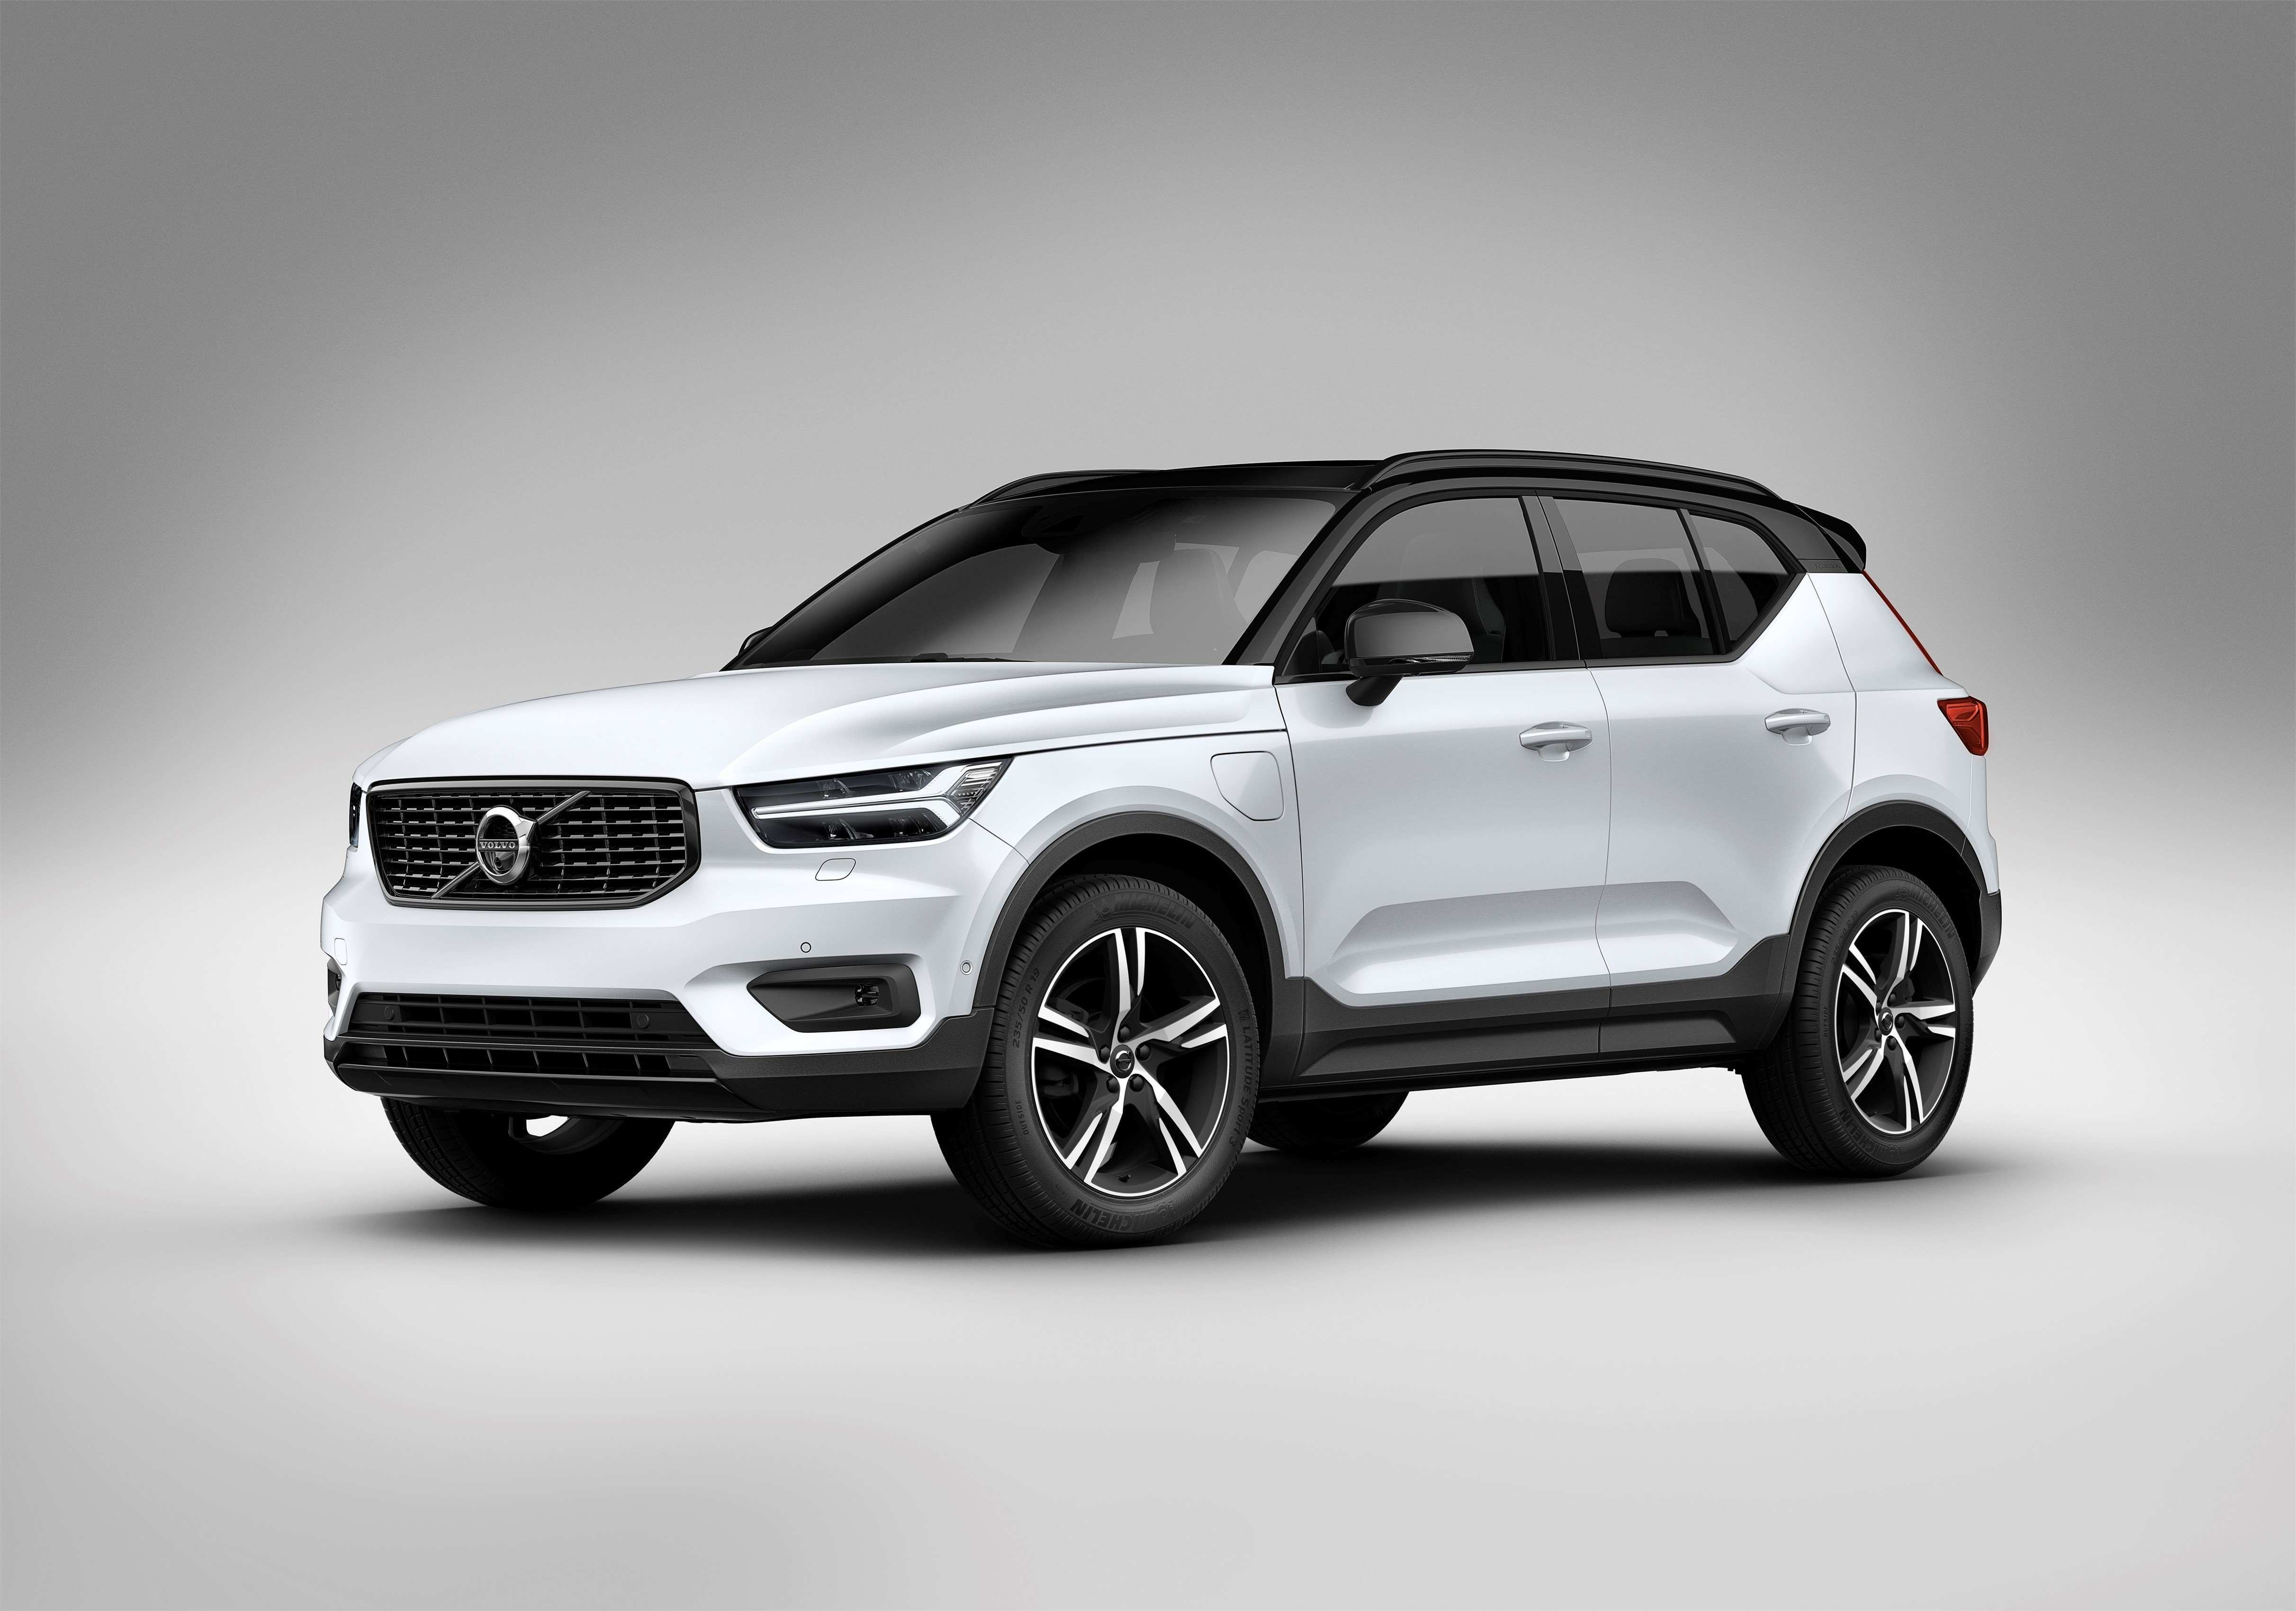 41 Great New Volvo Electrification 2019 Review And Release Date Interior with New Volvo Electrification 2019 Review And Release Date